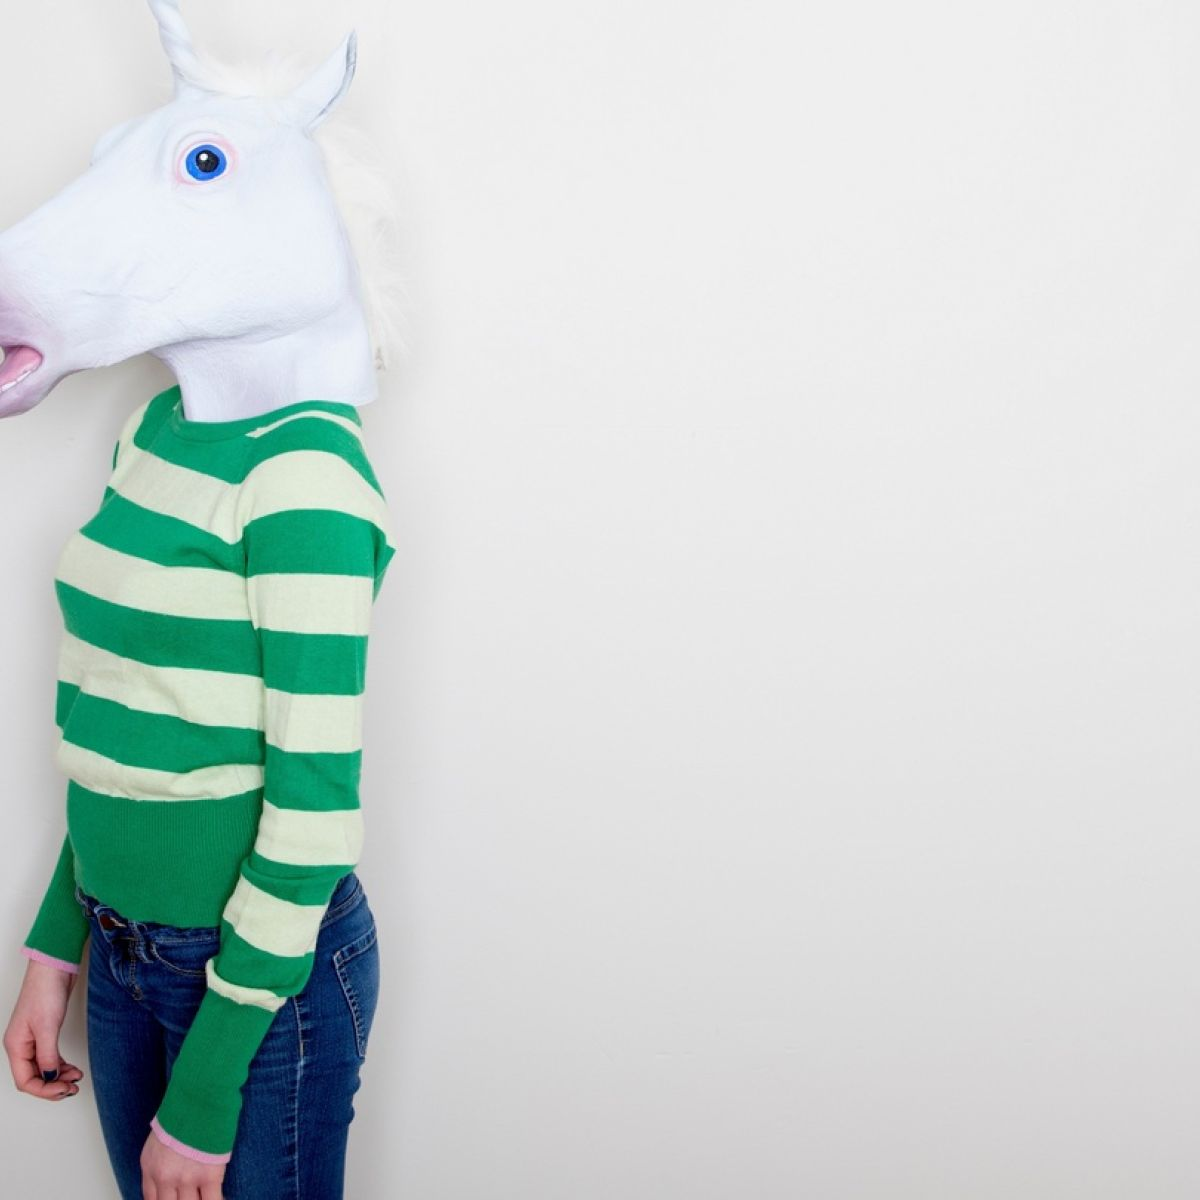 Rise of the unicorns: The boom in billion-dollar startups